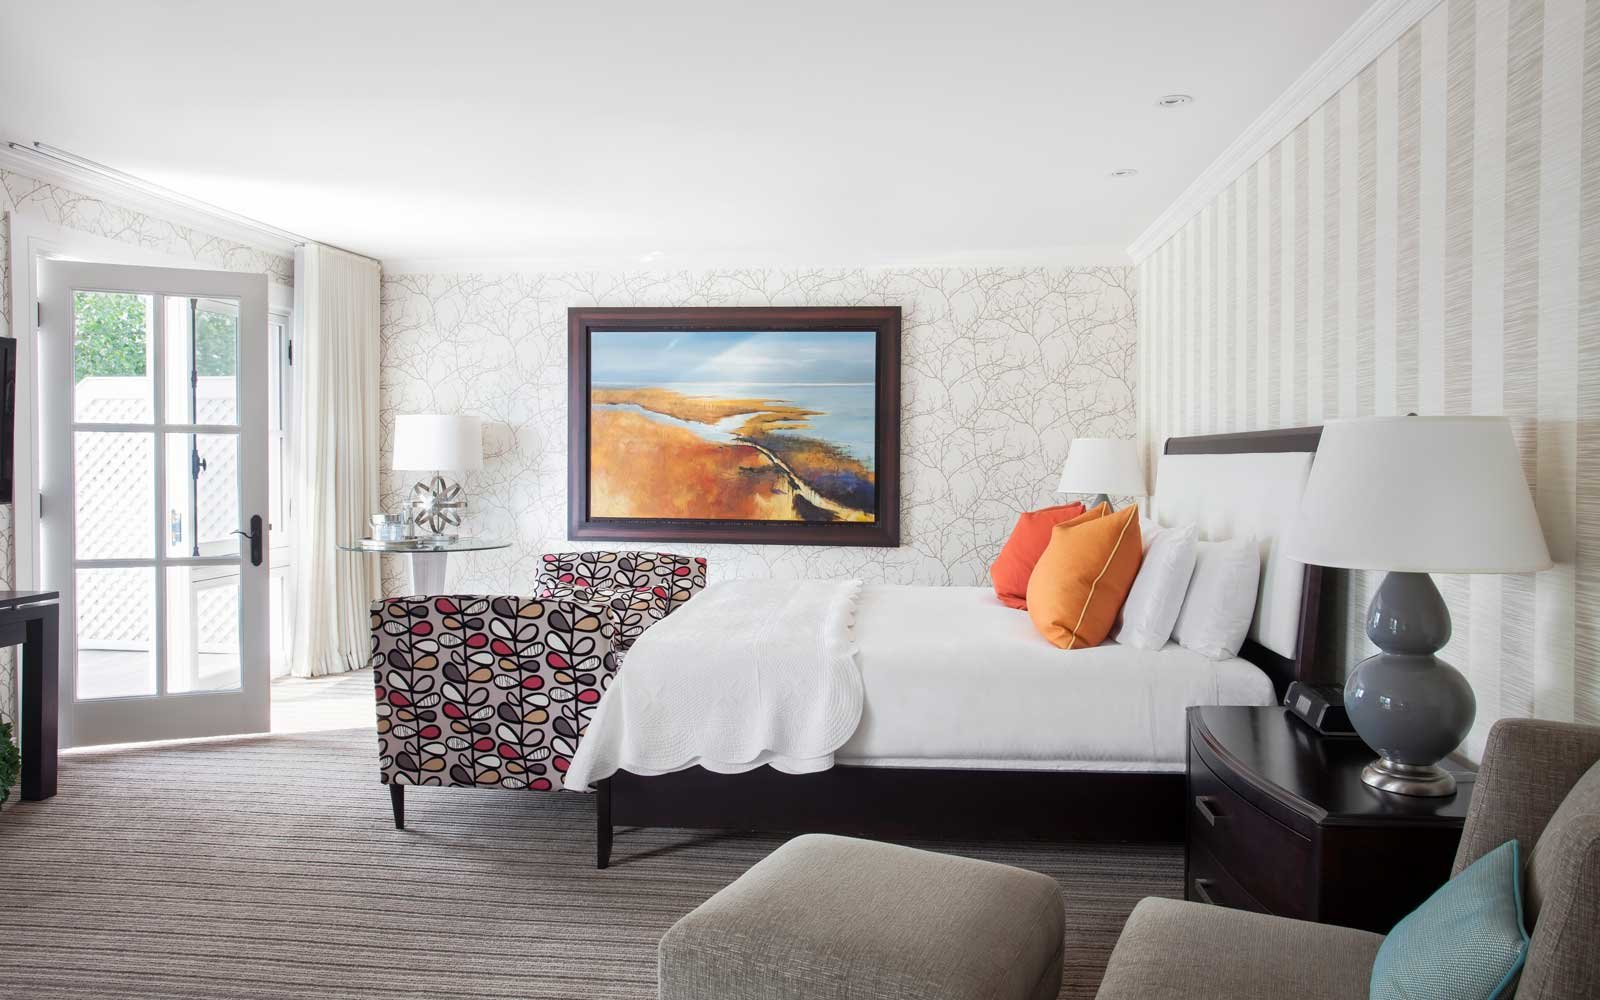 Suite at the Manoir Hovey, in Canada